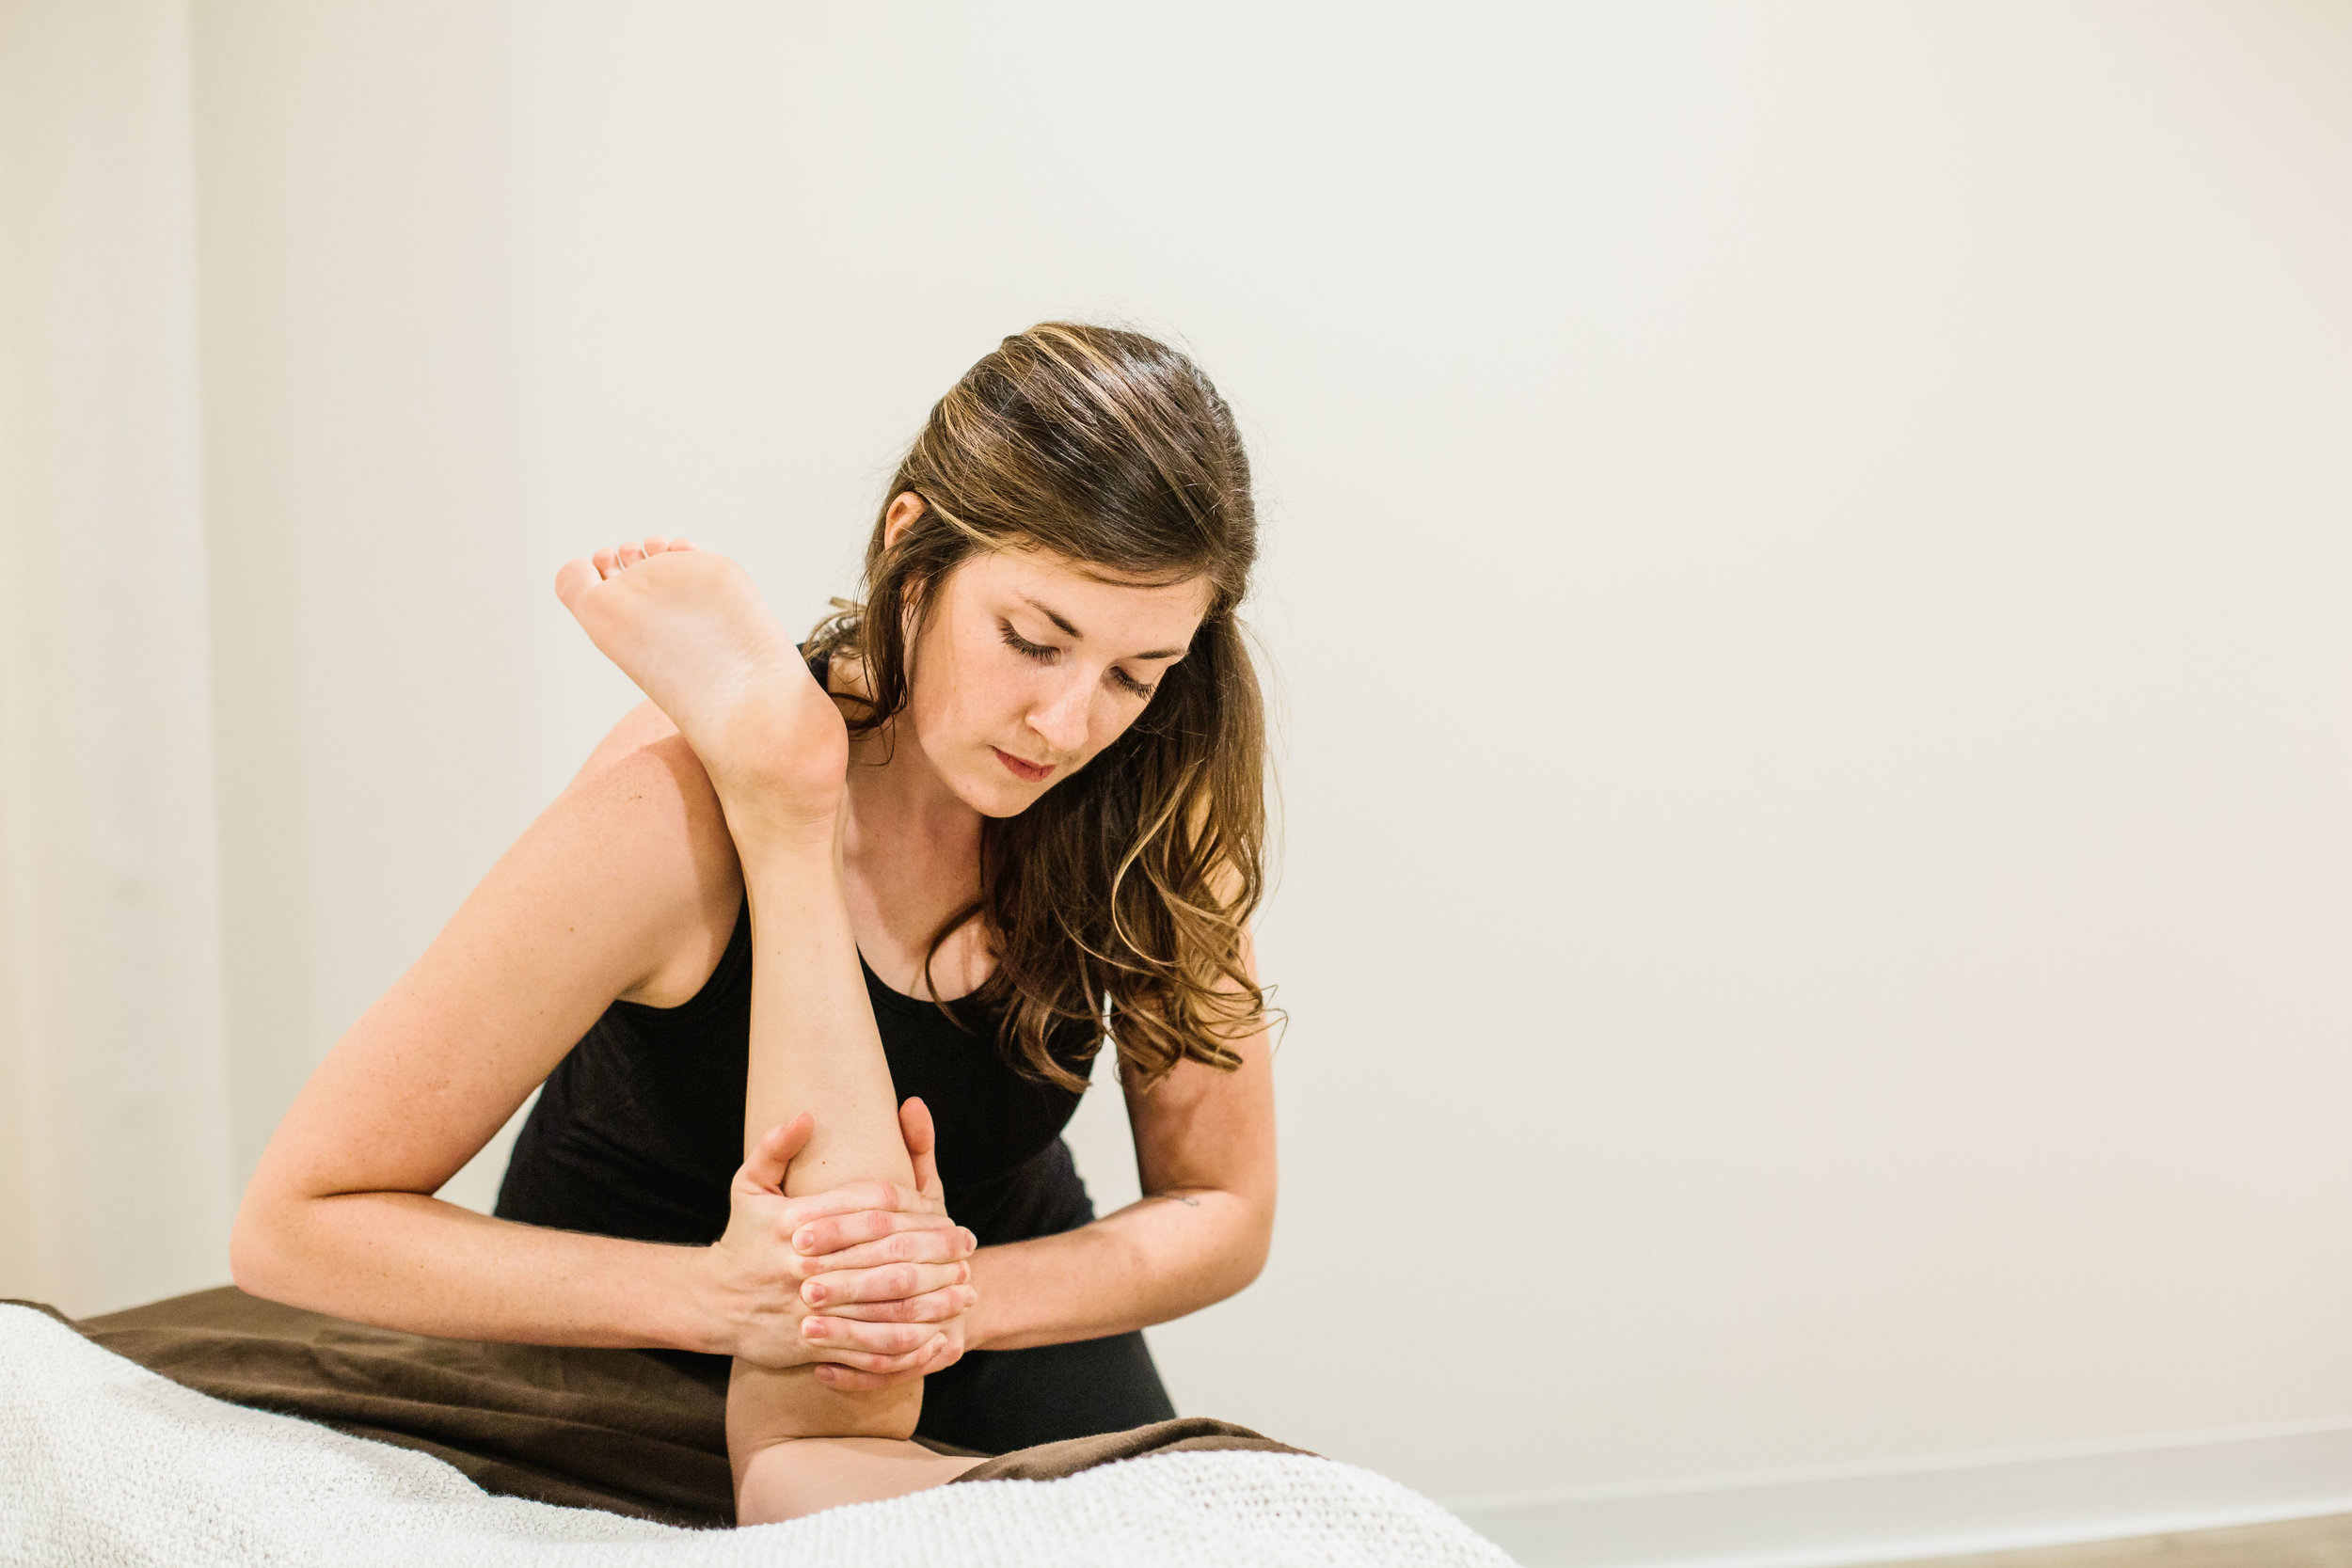 … - Brittany, the massage was amazing! My chronic neck pain has lessened and my muscles feel much more relaxed, stretched, and comfortable! THANK YOU! Also, loved getting to know you and appreciated how you explained the process and intention behind everything you did. I will definitely be scheduling again soon!